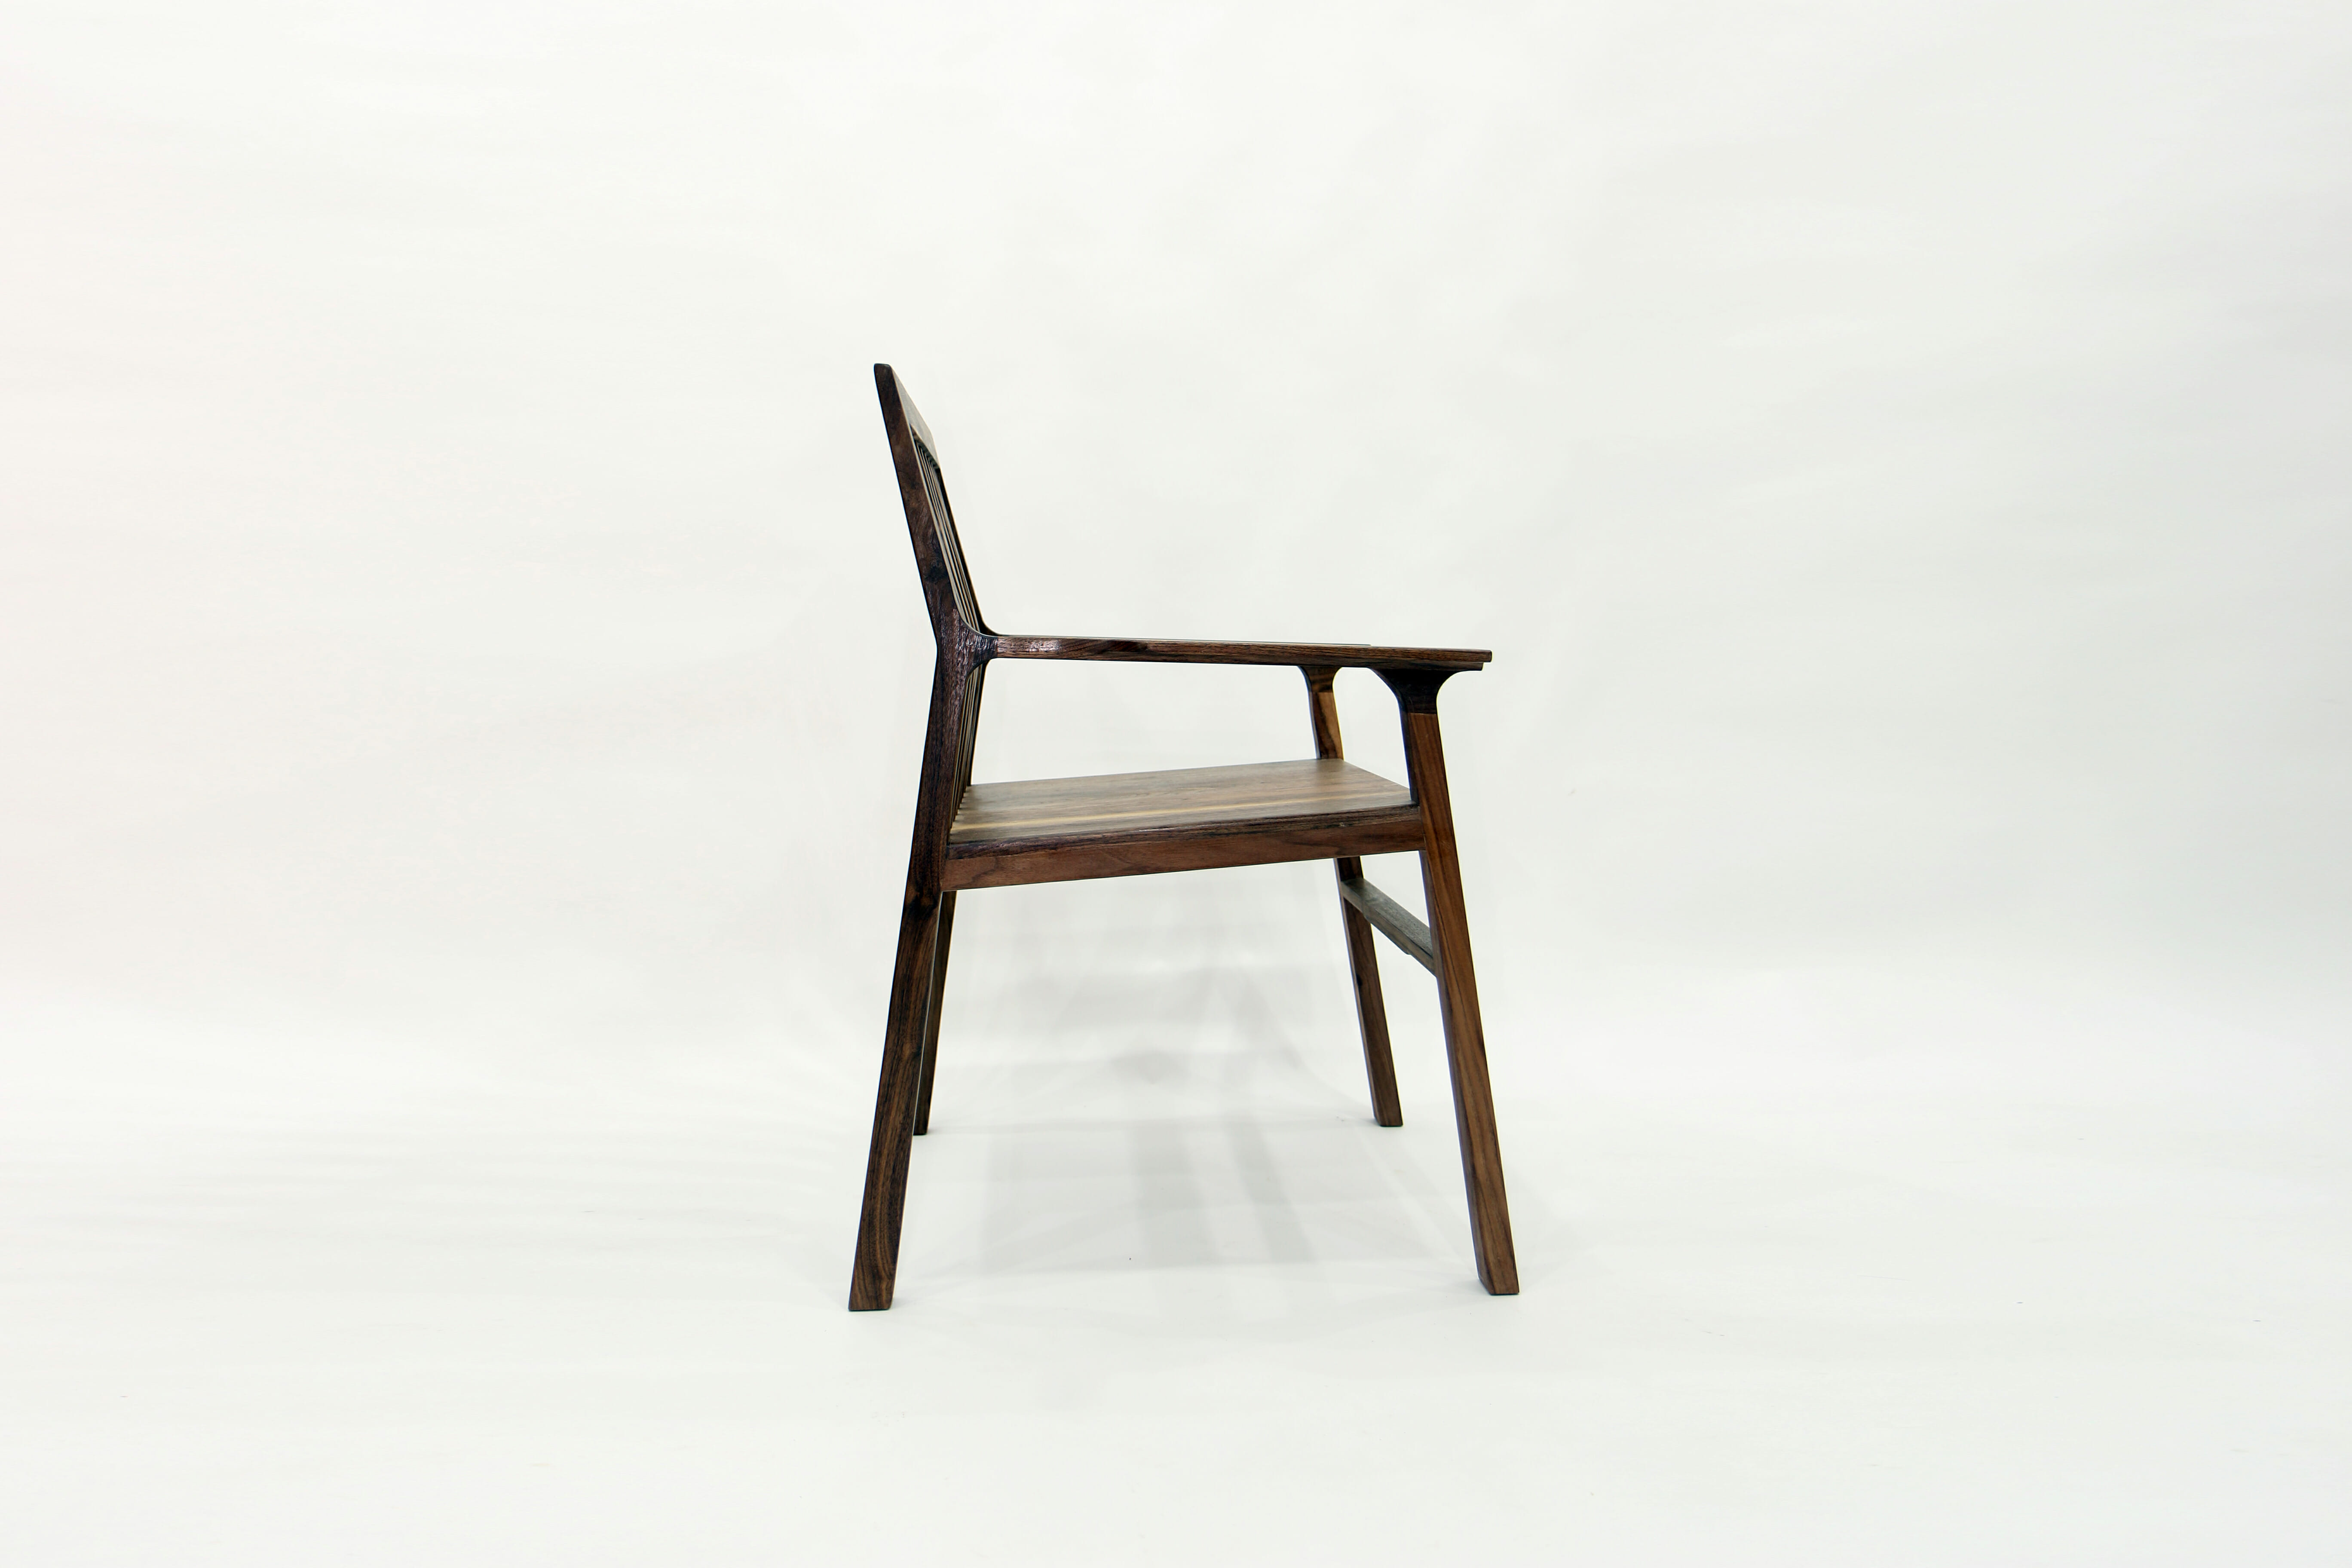 KINETIC/Arm chair